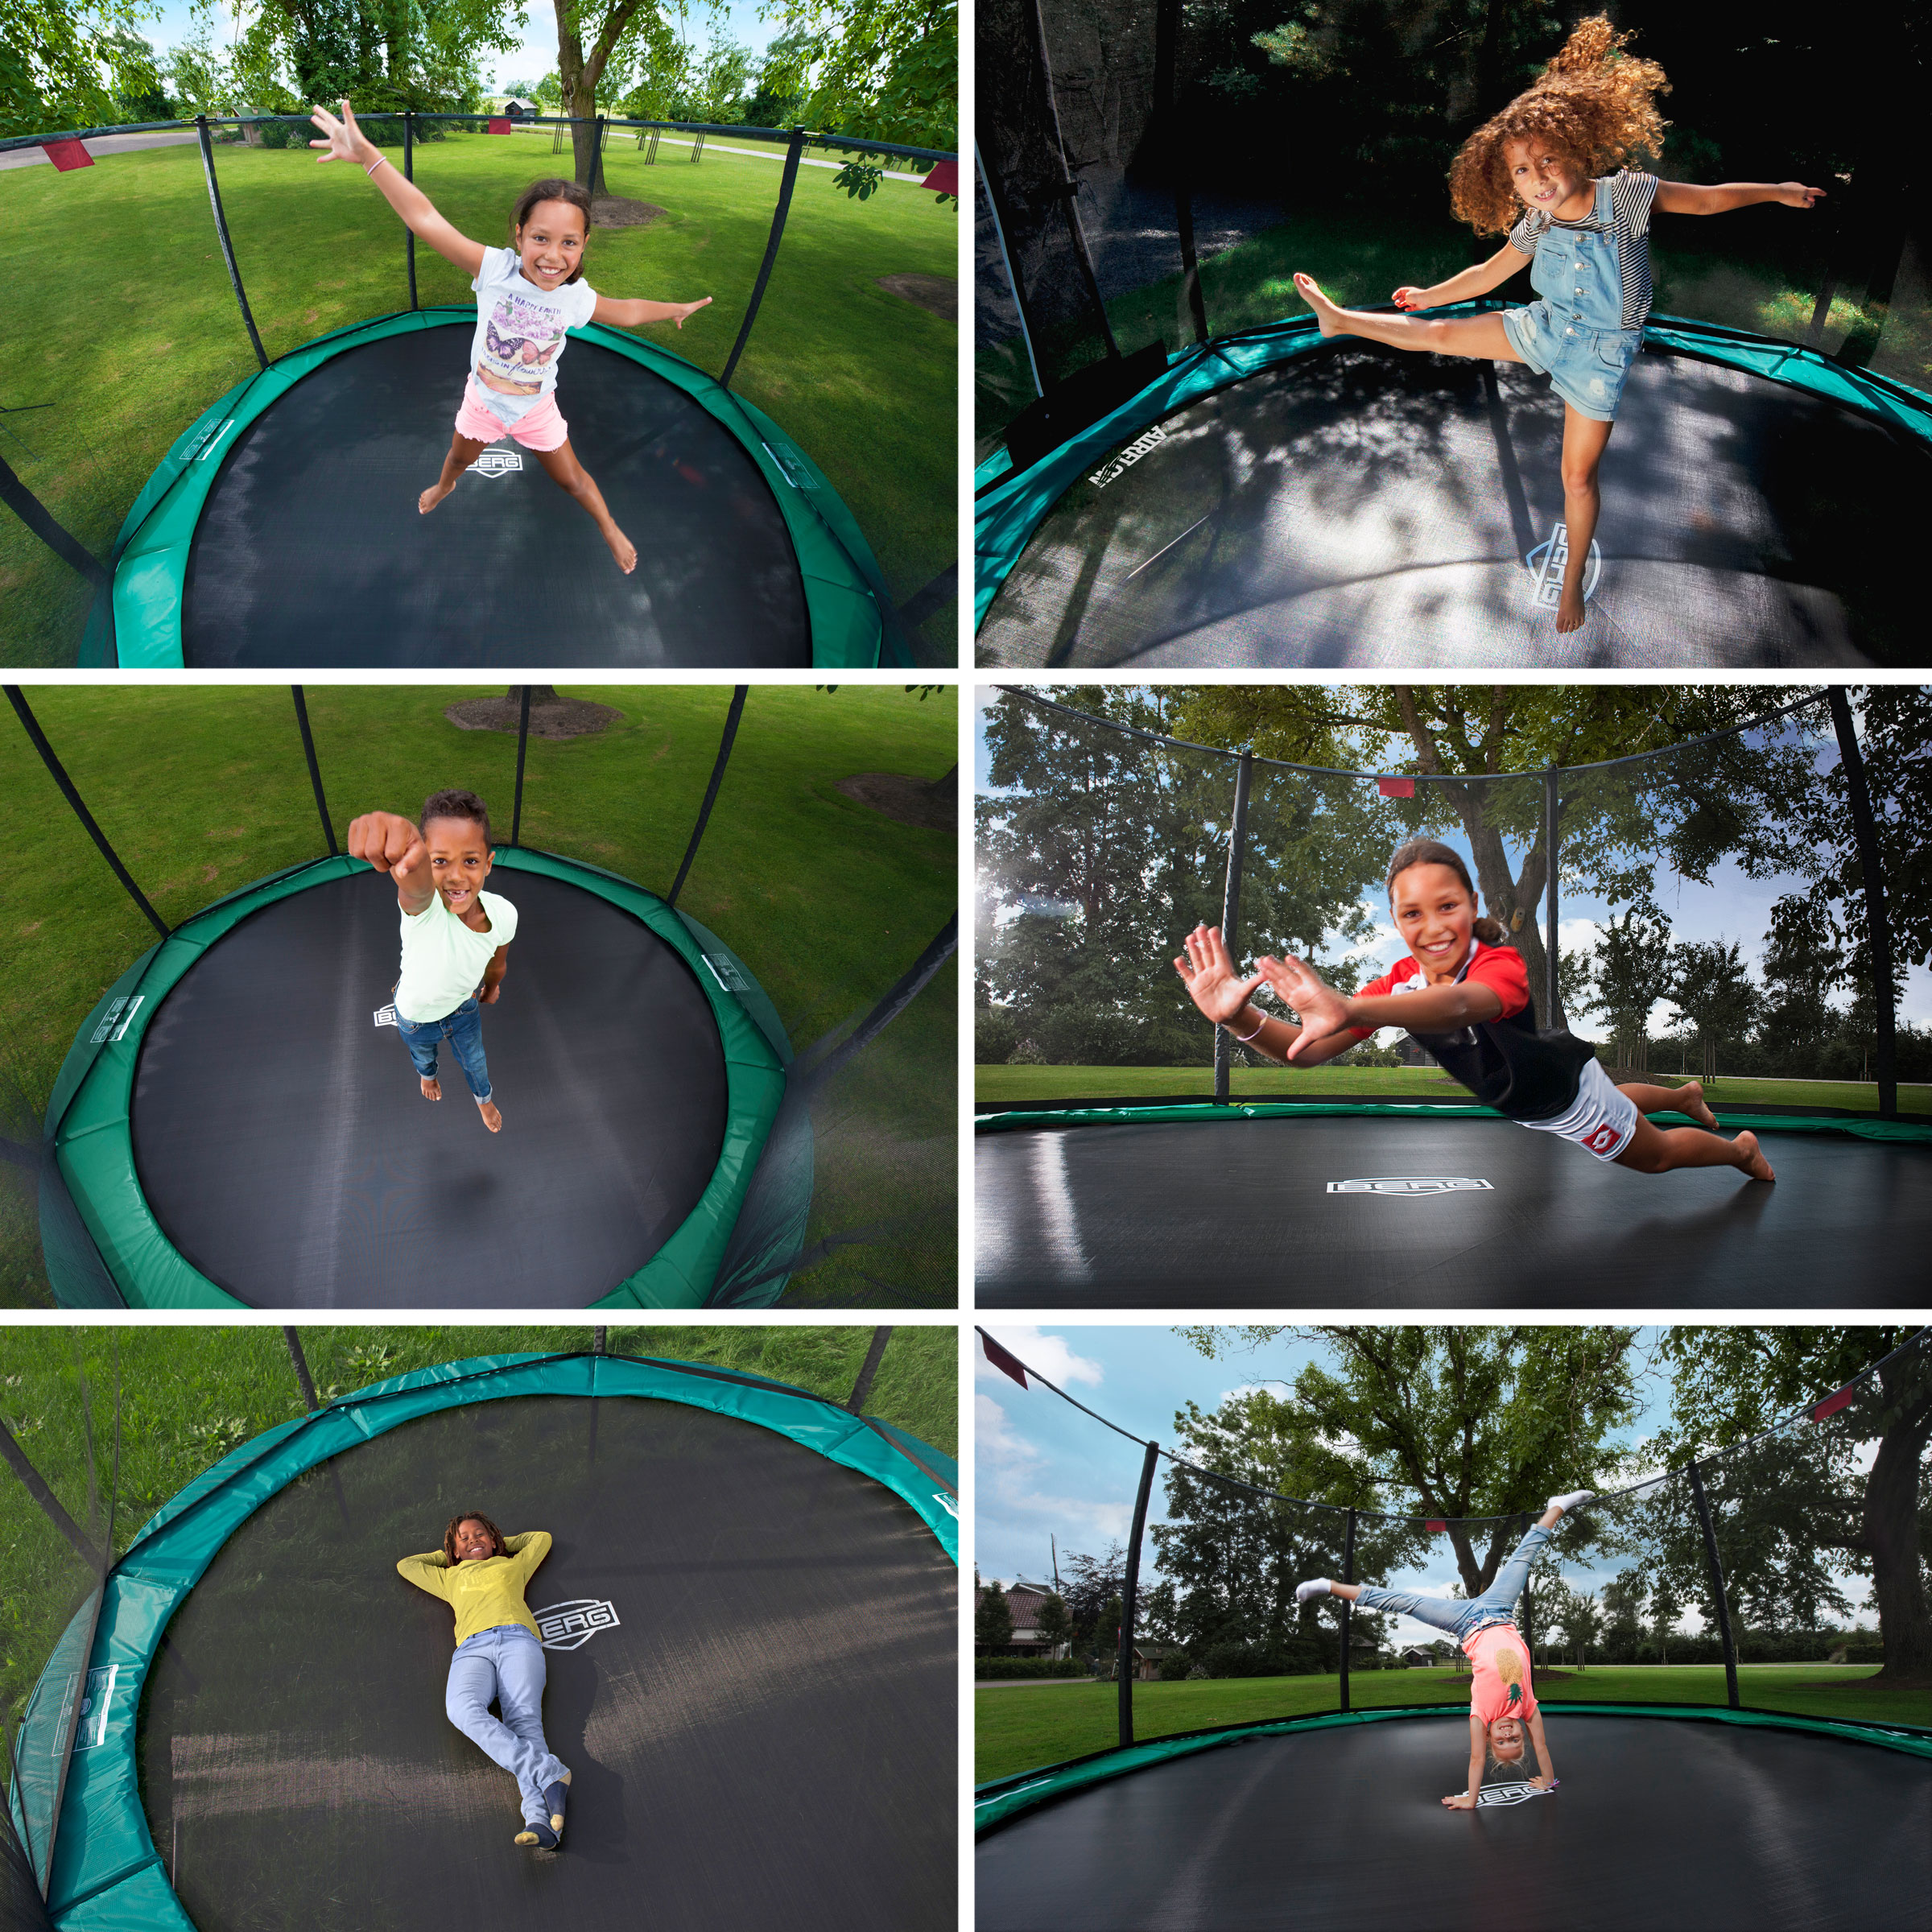 Trampolin InGround Champion grün + Netz Deluxe Ø380cm BERG toys Bild 3